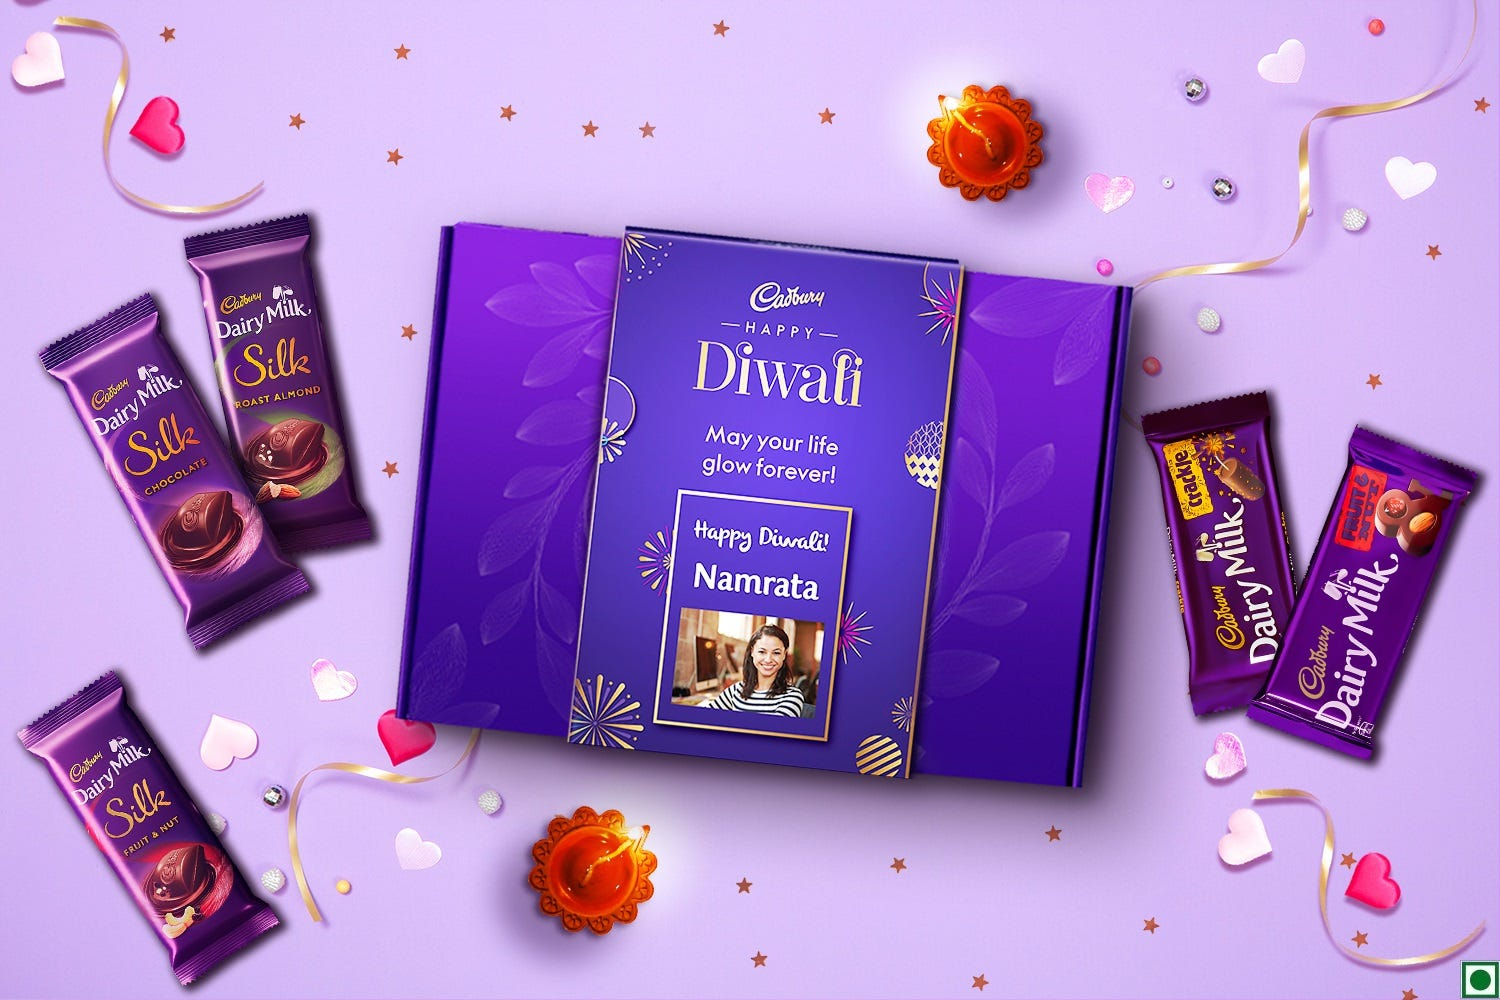 How To Make The Most Of Corporate Diwali Gifting Best Diwali Gift Ideas For Clients Cadbury Gifting India Joy Deliveries